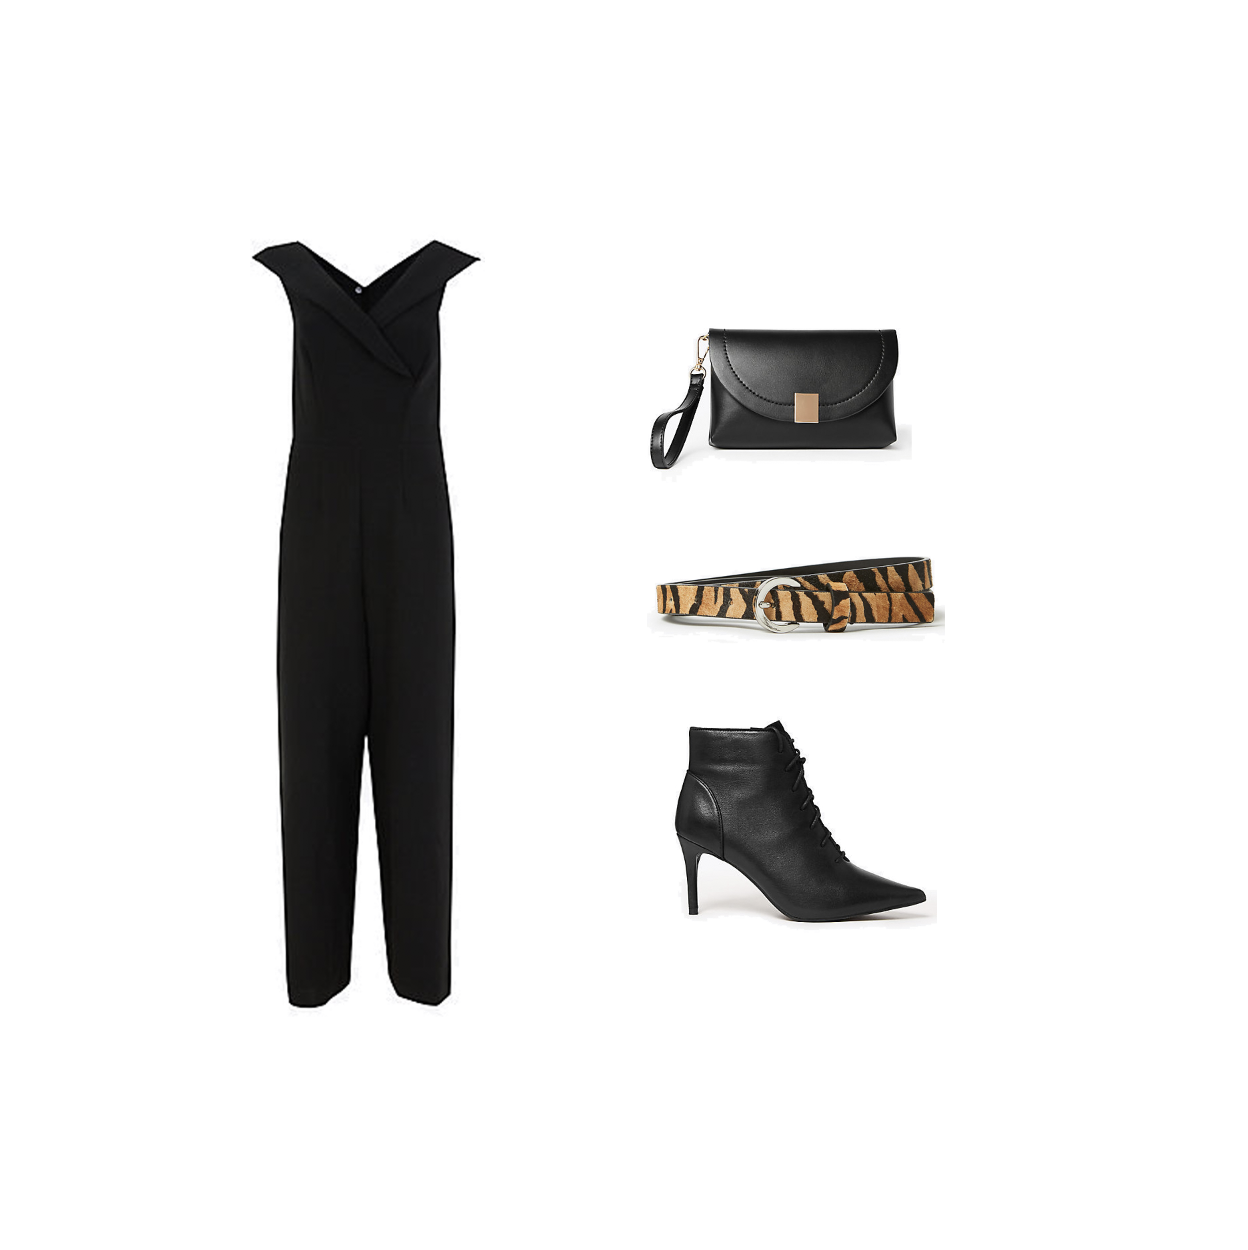 my midlife fashion, marks and Spencer, party wear, party wear, marks and Spencer off the shoulder jumpsuit, marks and Spencer leather animal print belt, marks and Spencer soft clutch bag, marks and Spencer leather lace up stiletto heel ankle boots